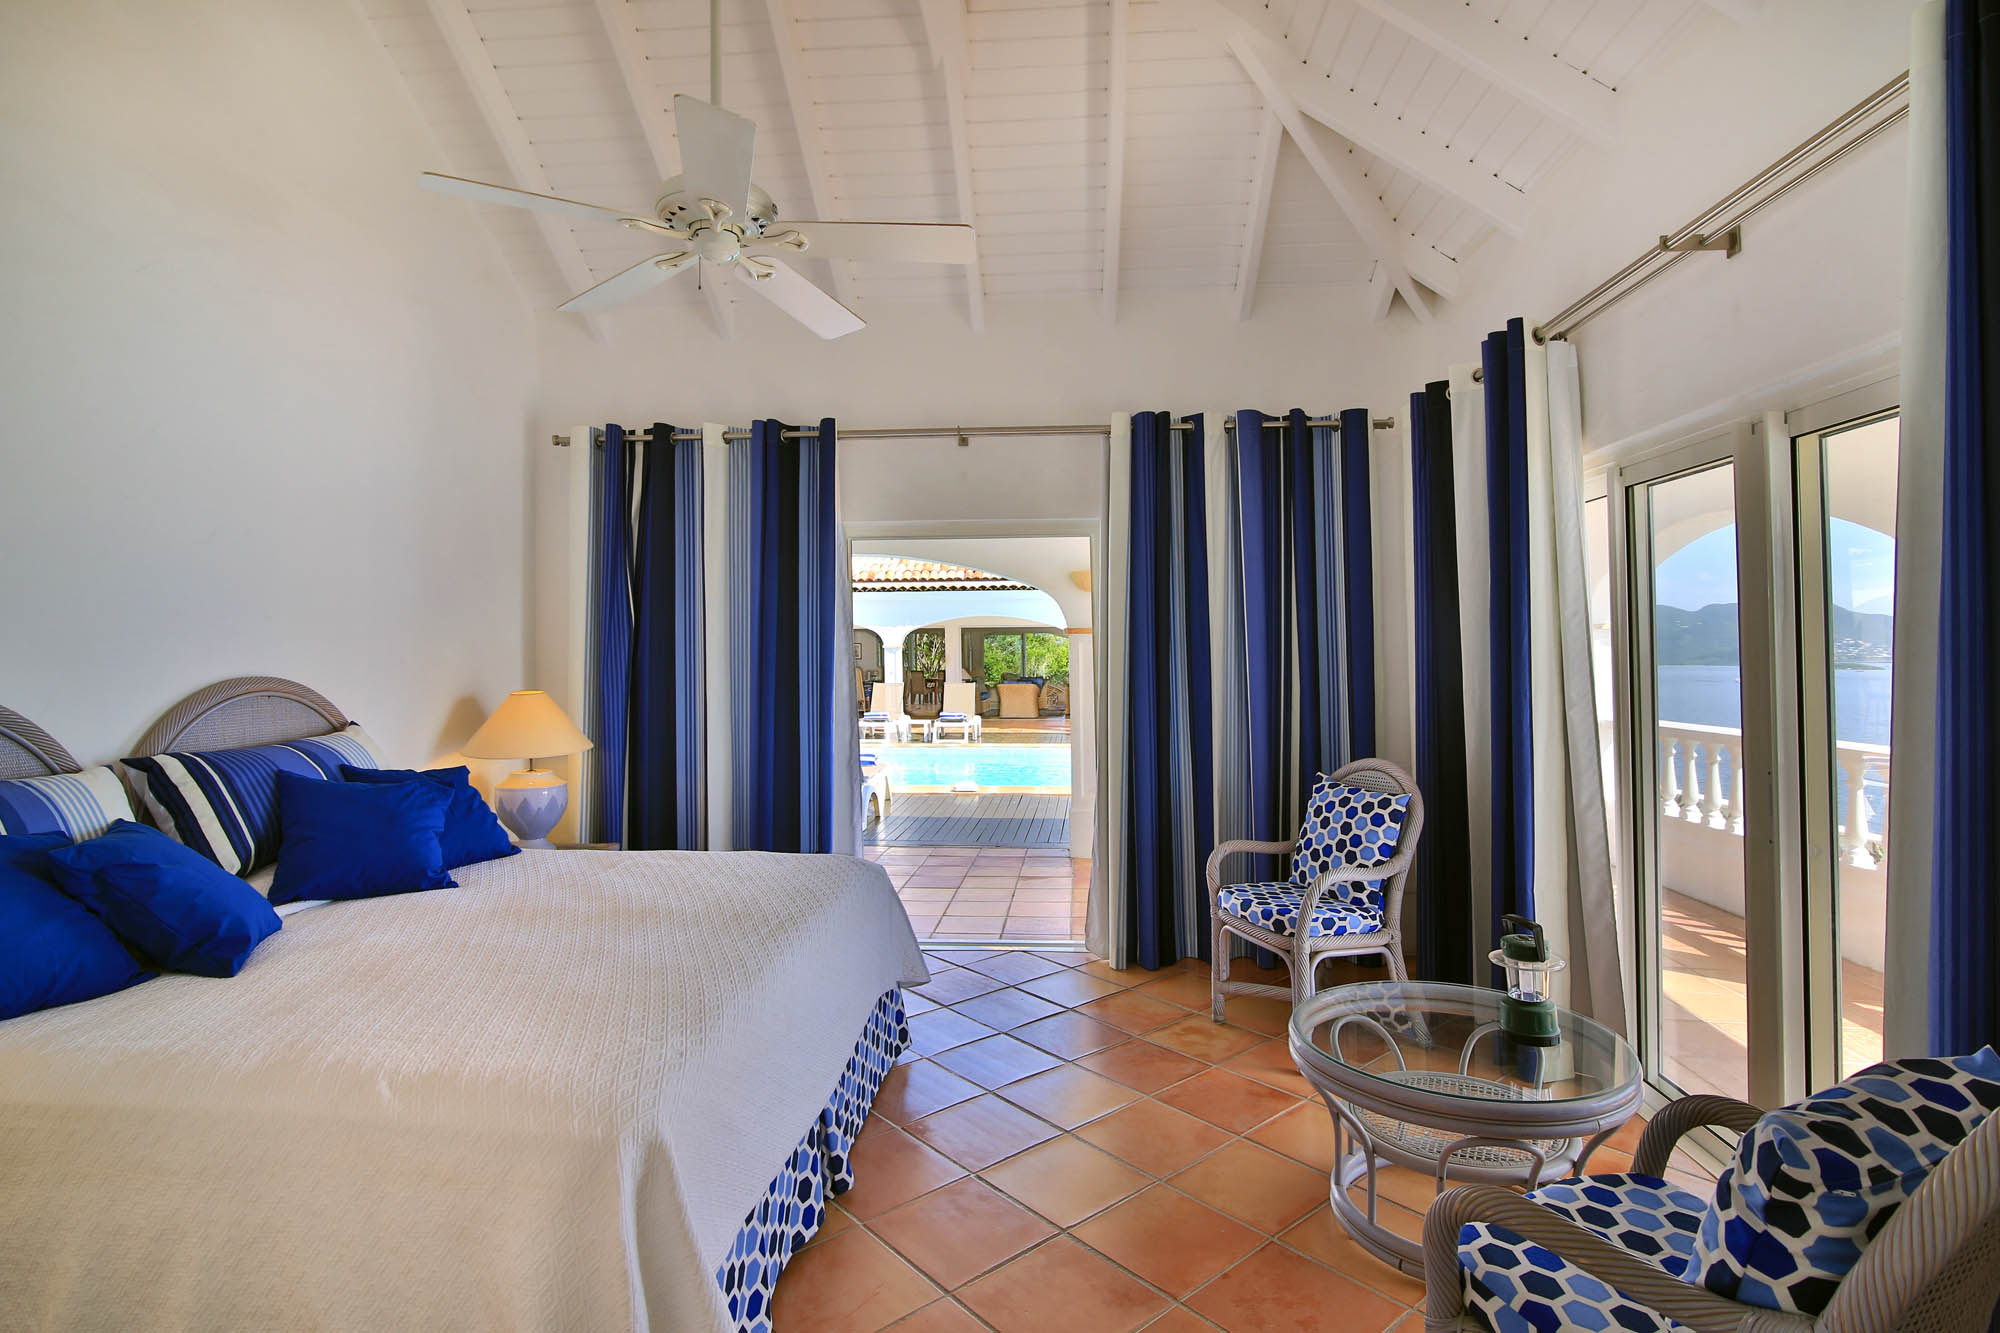 A spacious master bedroom suite with gorgeous ocean views at Escapade, St. Martin villa rental, French West Indies.